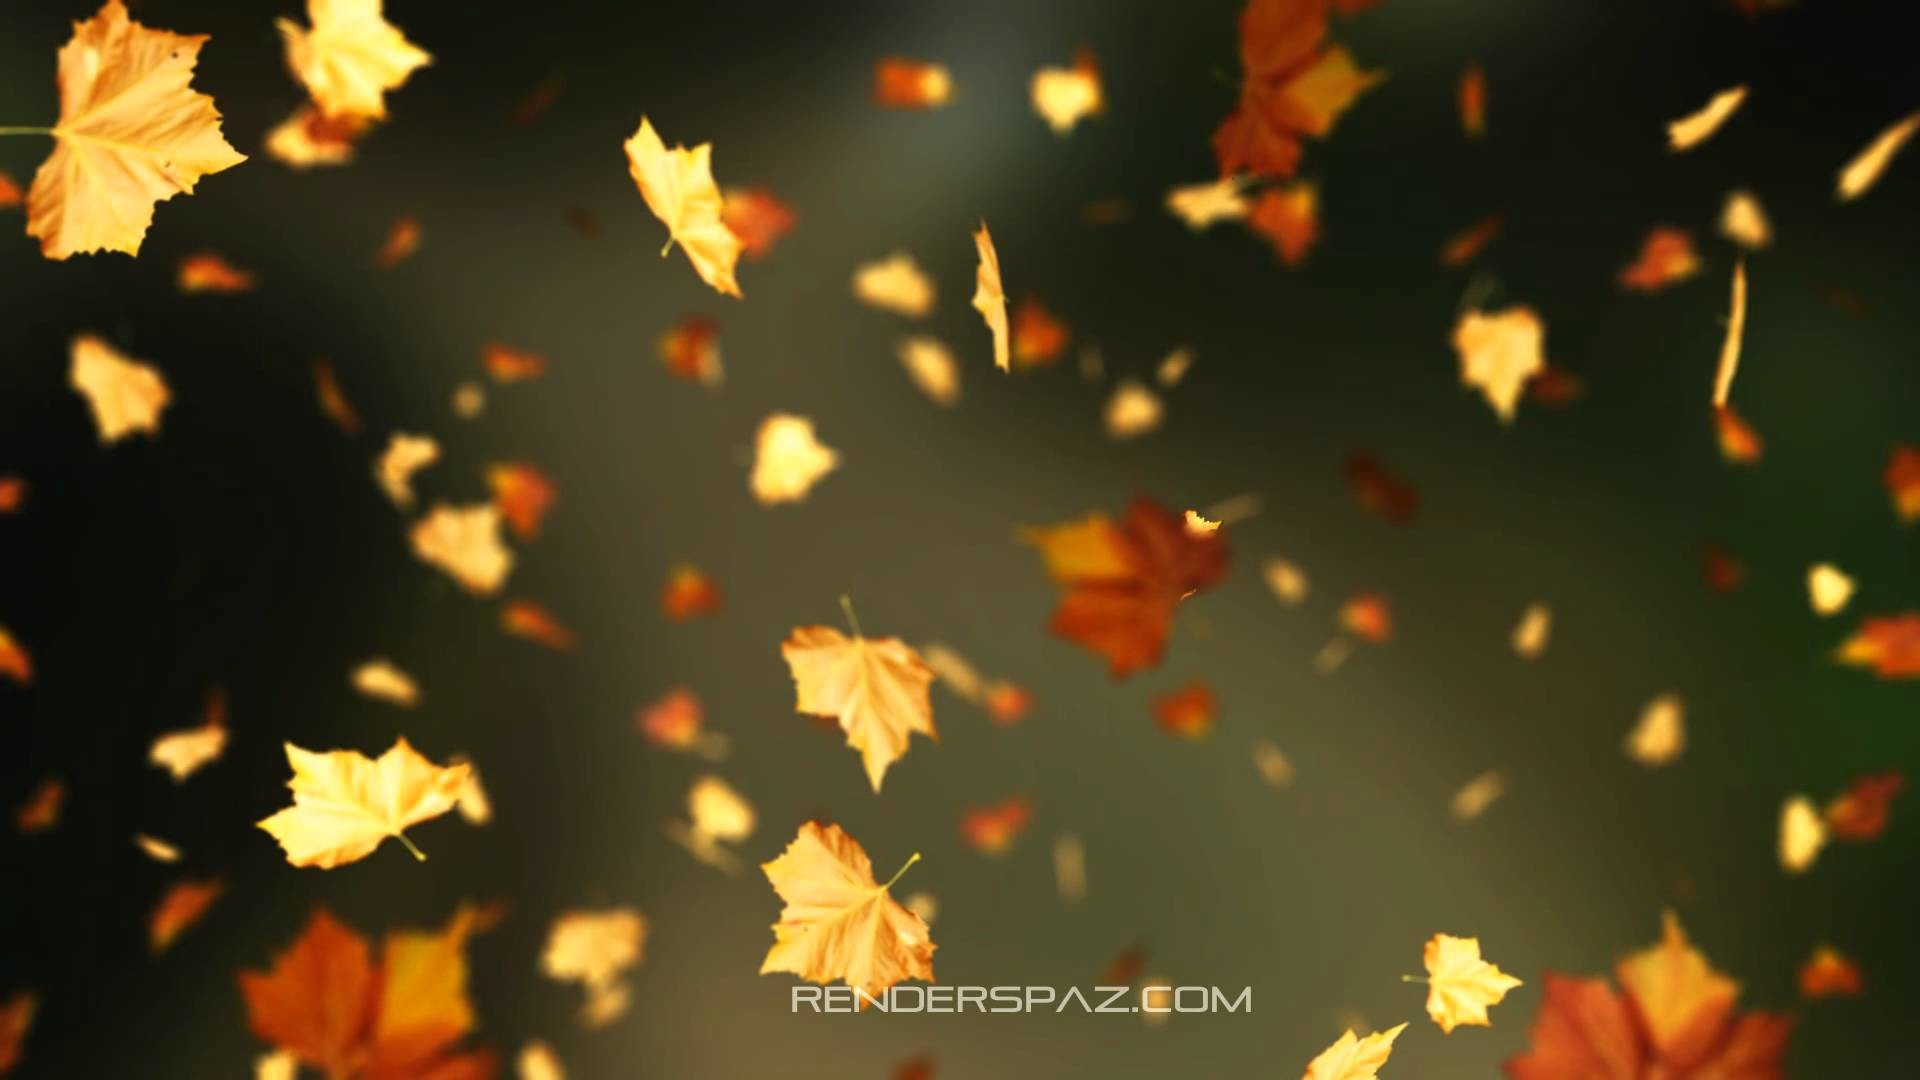 Free Animated Falling Leaves Wallpaper Animated Wallpaper On Windows 10 60 Images